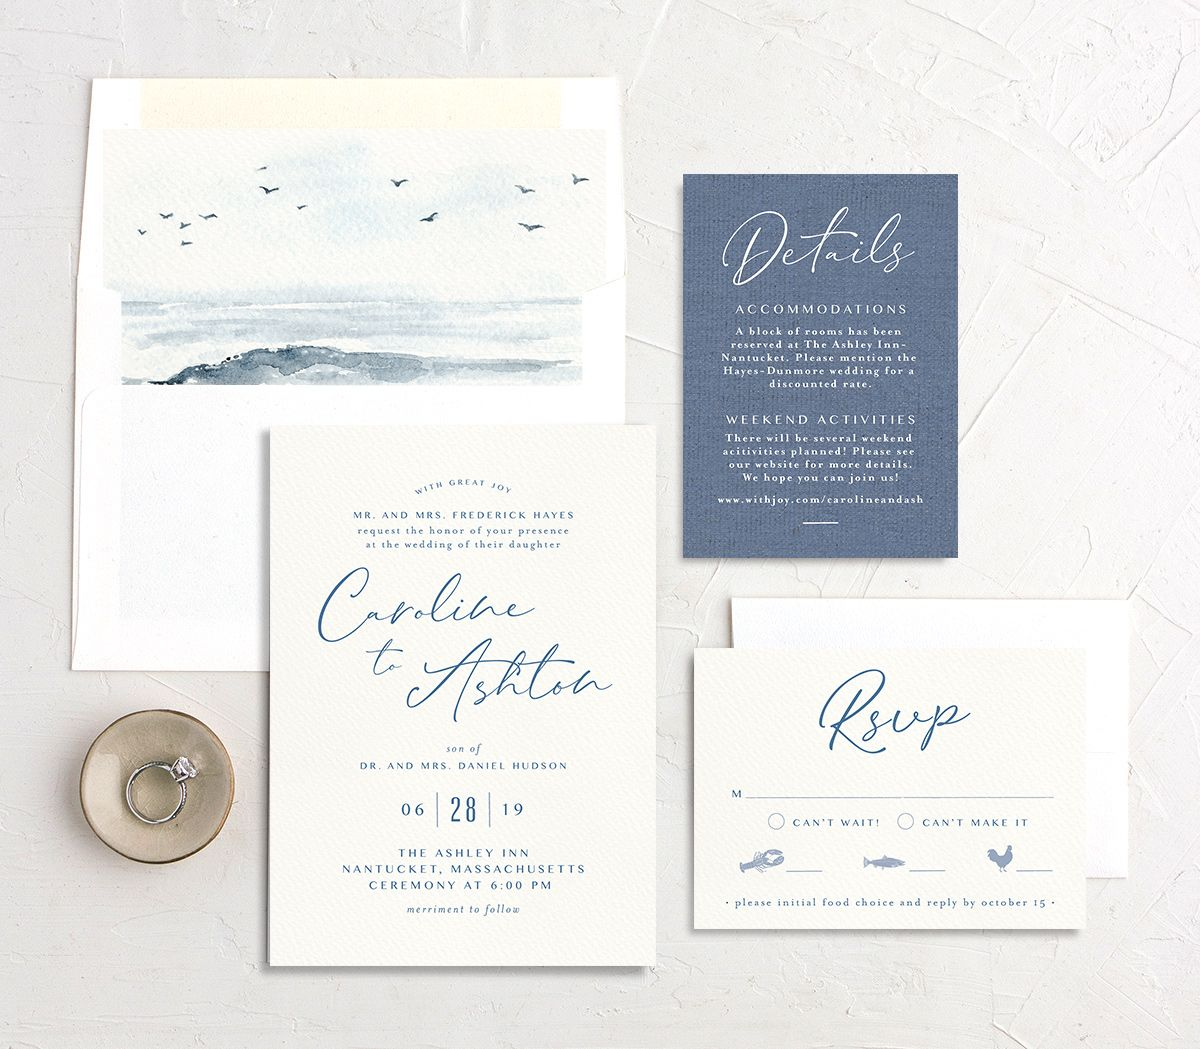 Coastal Love wedding invitation suite in blue